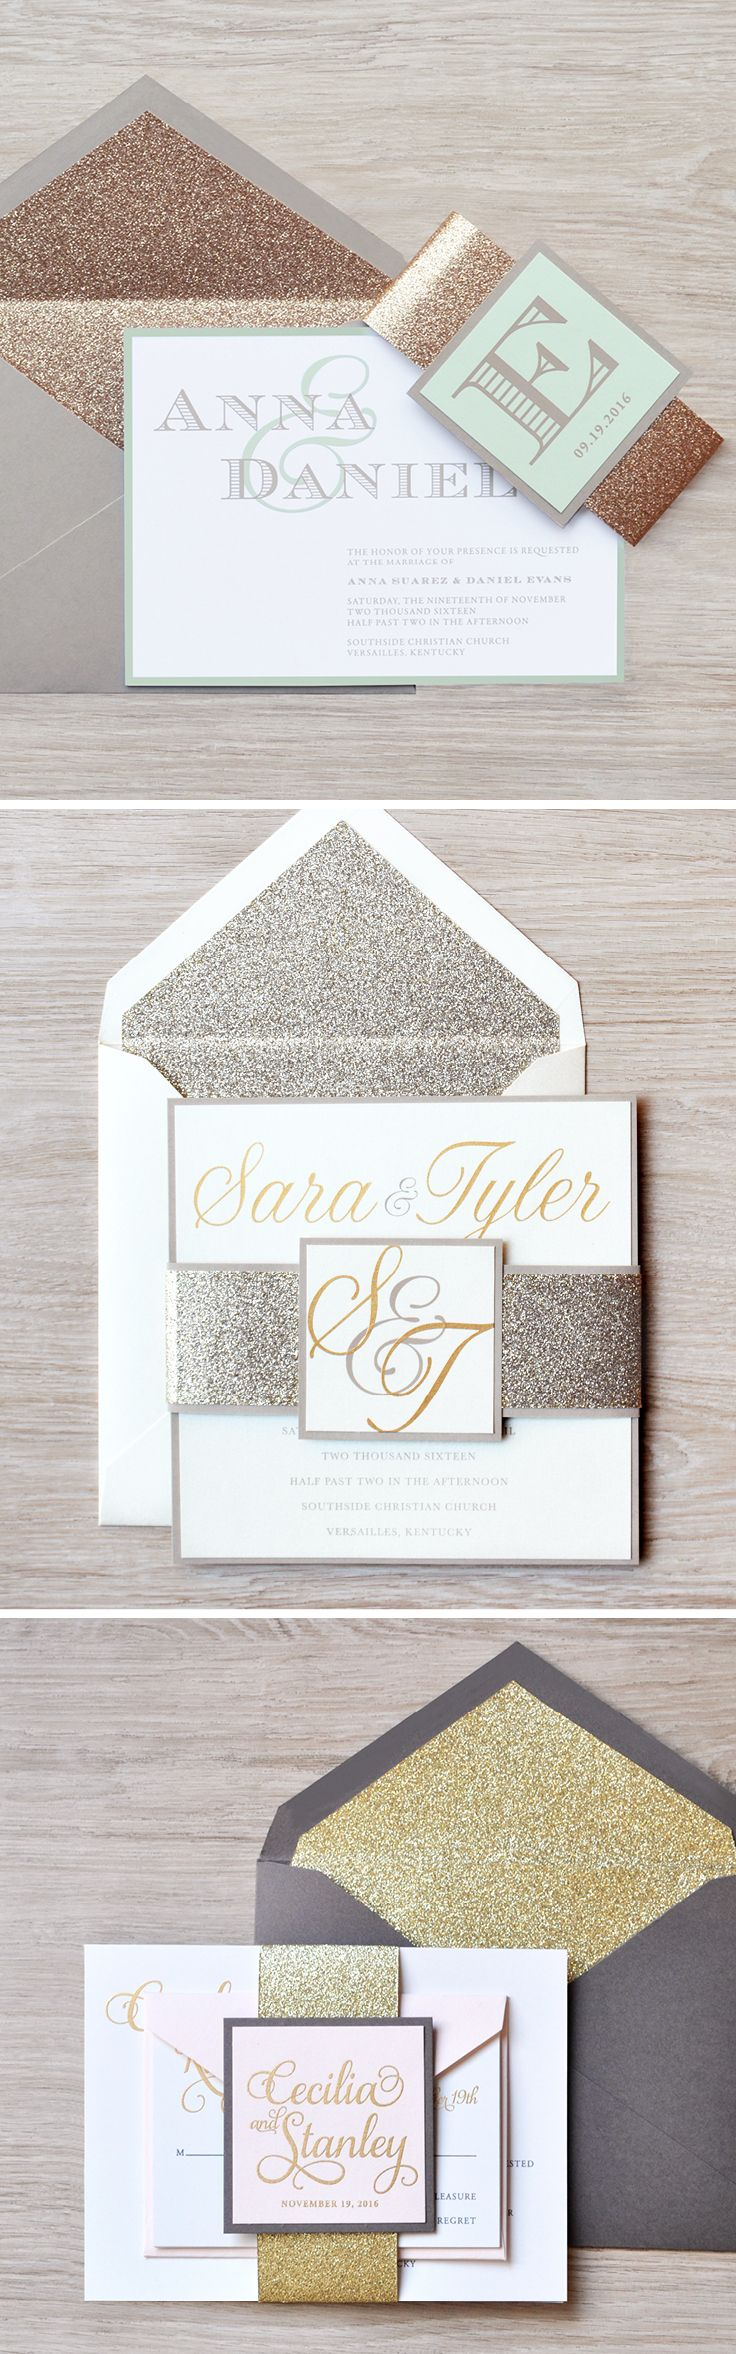 143 Best Diy Wedding Invitations Images On Pinterest Diy Wedding